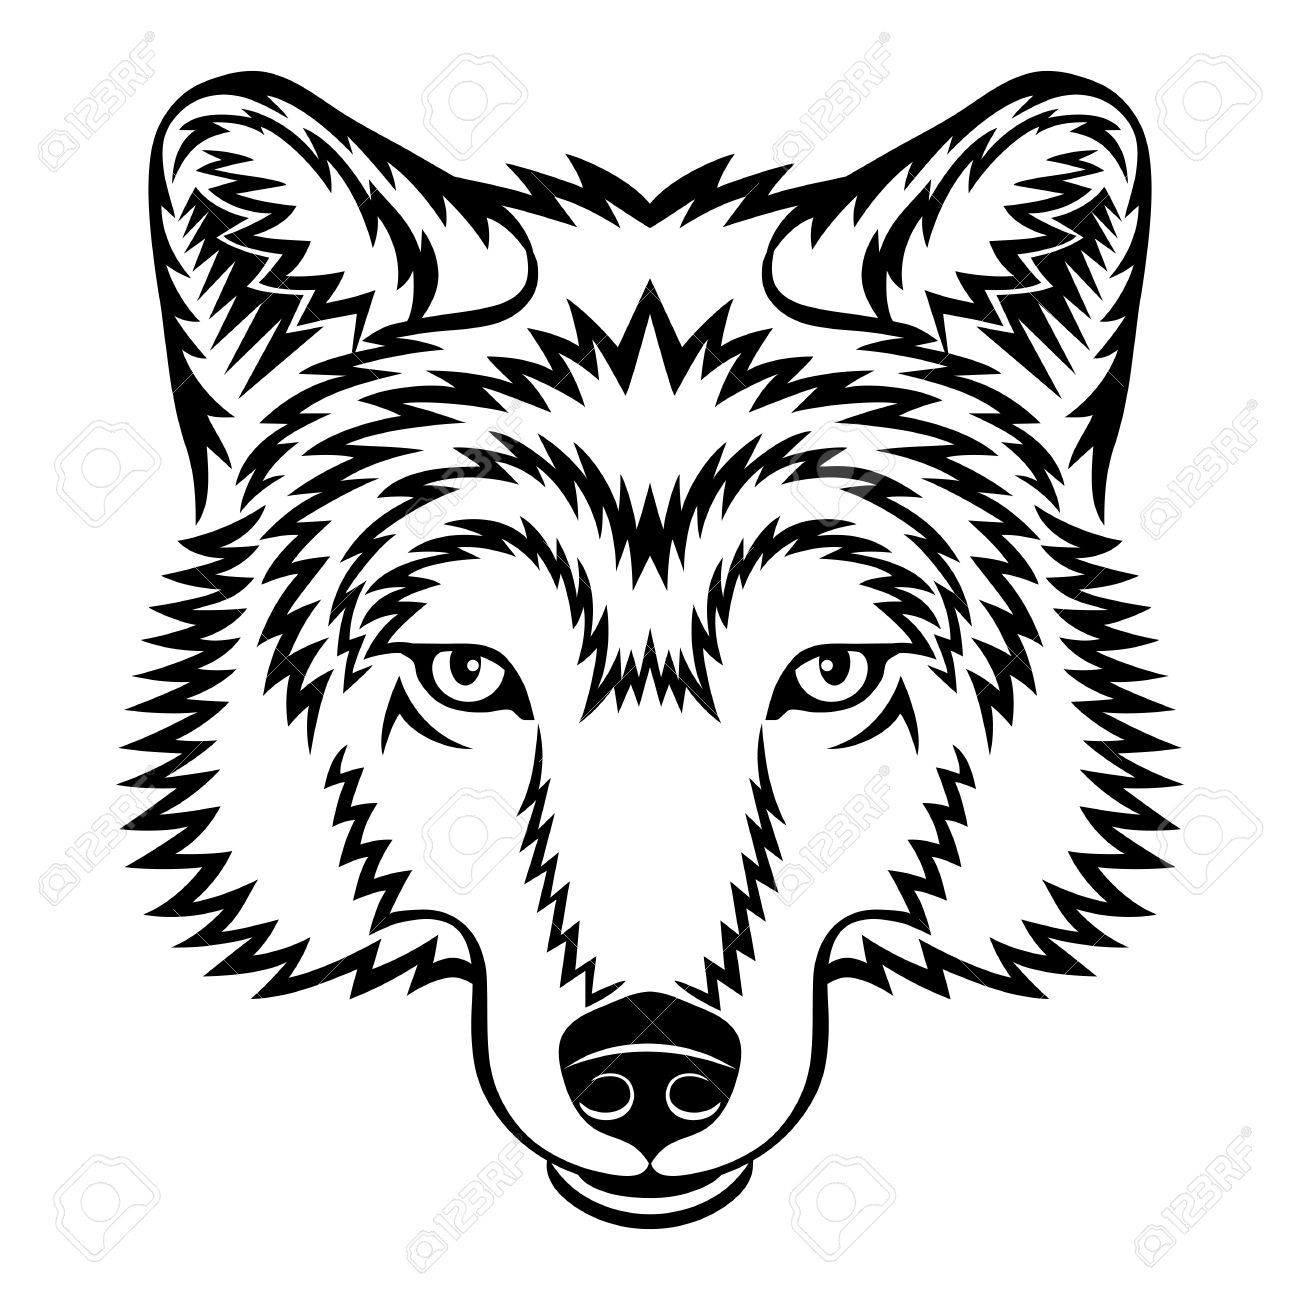 Black and white wolf clipart 4 » Clipart Portal.